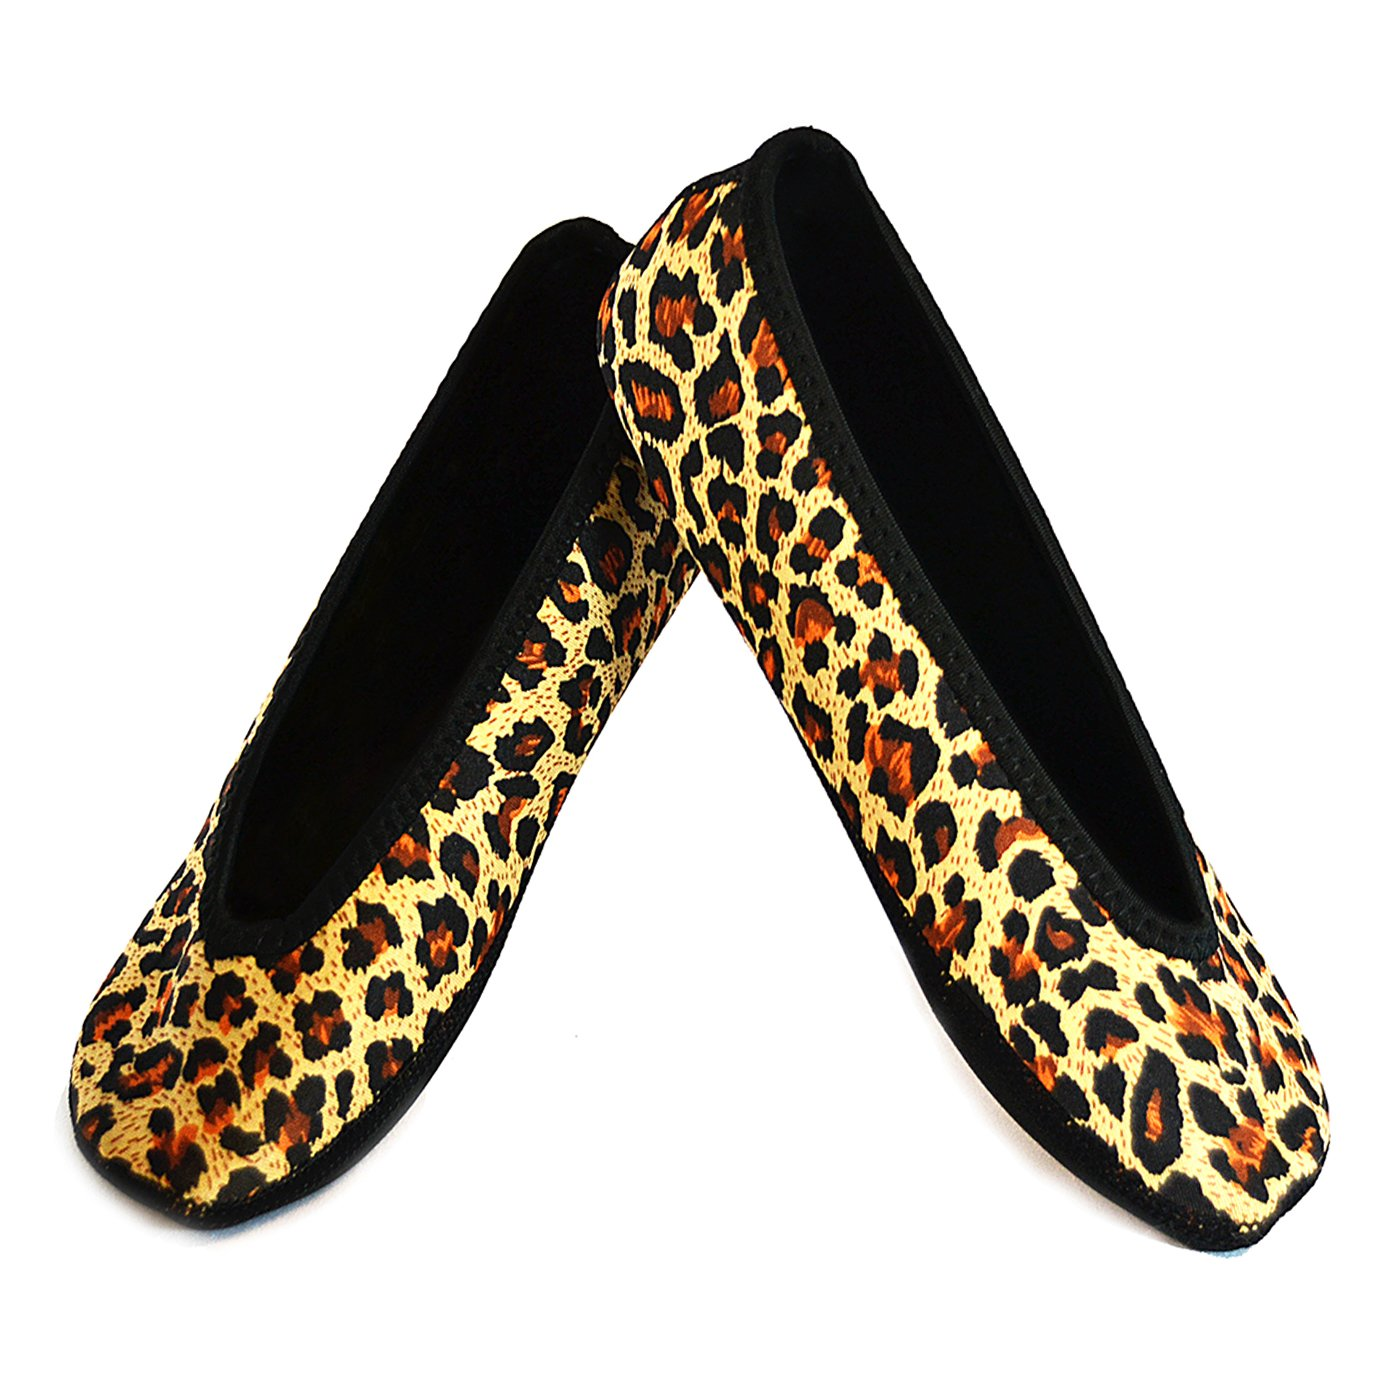 NuFoot Women's Shoes Ballet Flats Best Foldable & Flexible Travel & Exercise Slippers, Dance Shoes, Yoga Socks, Indoor Shoes, Leopard Print, Large